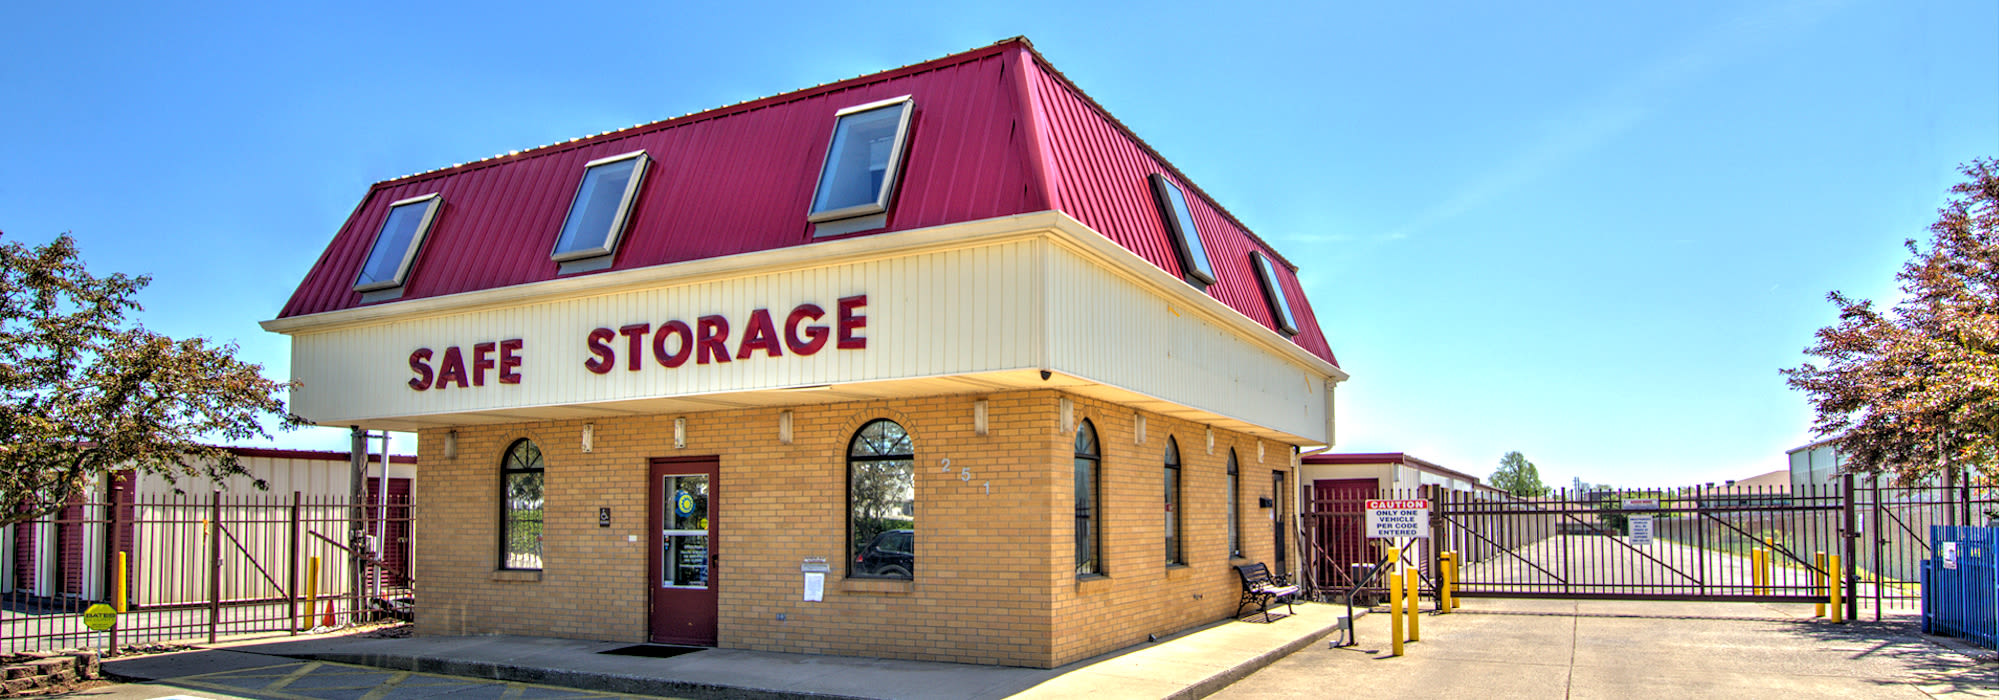 Perfect Safe Storage In Nicholasville, KY